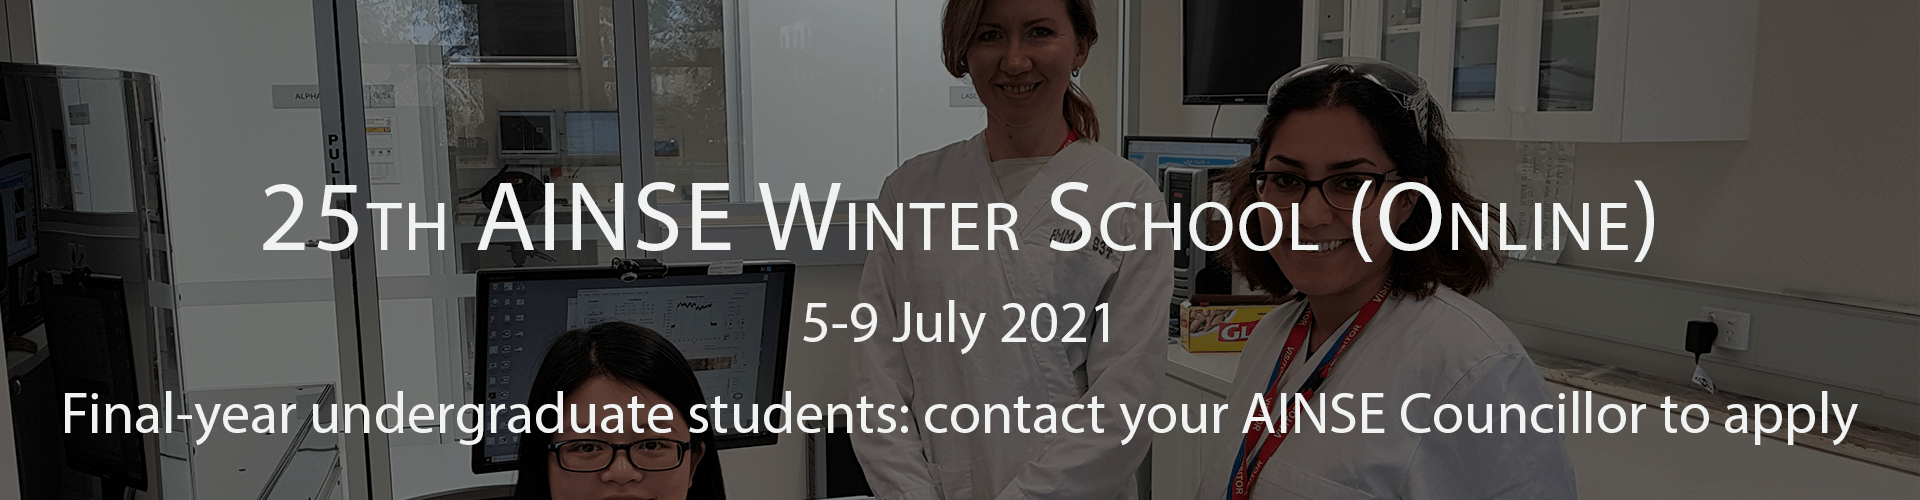 Winter School 2021